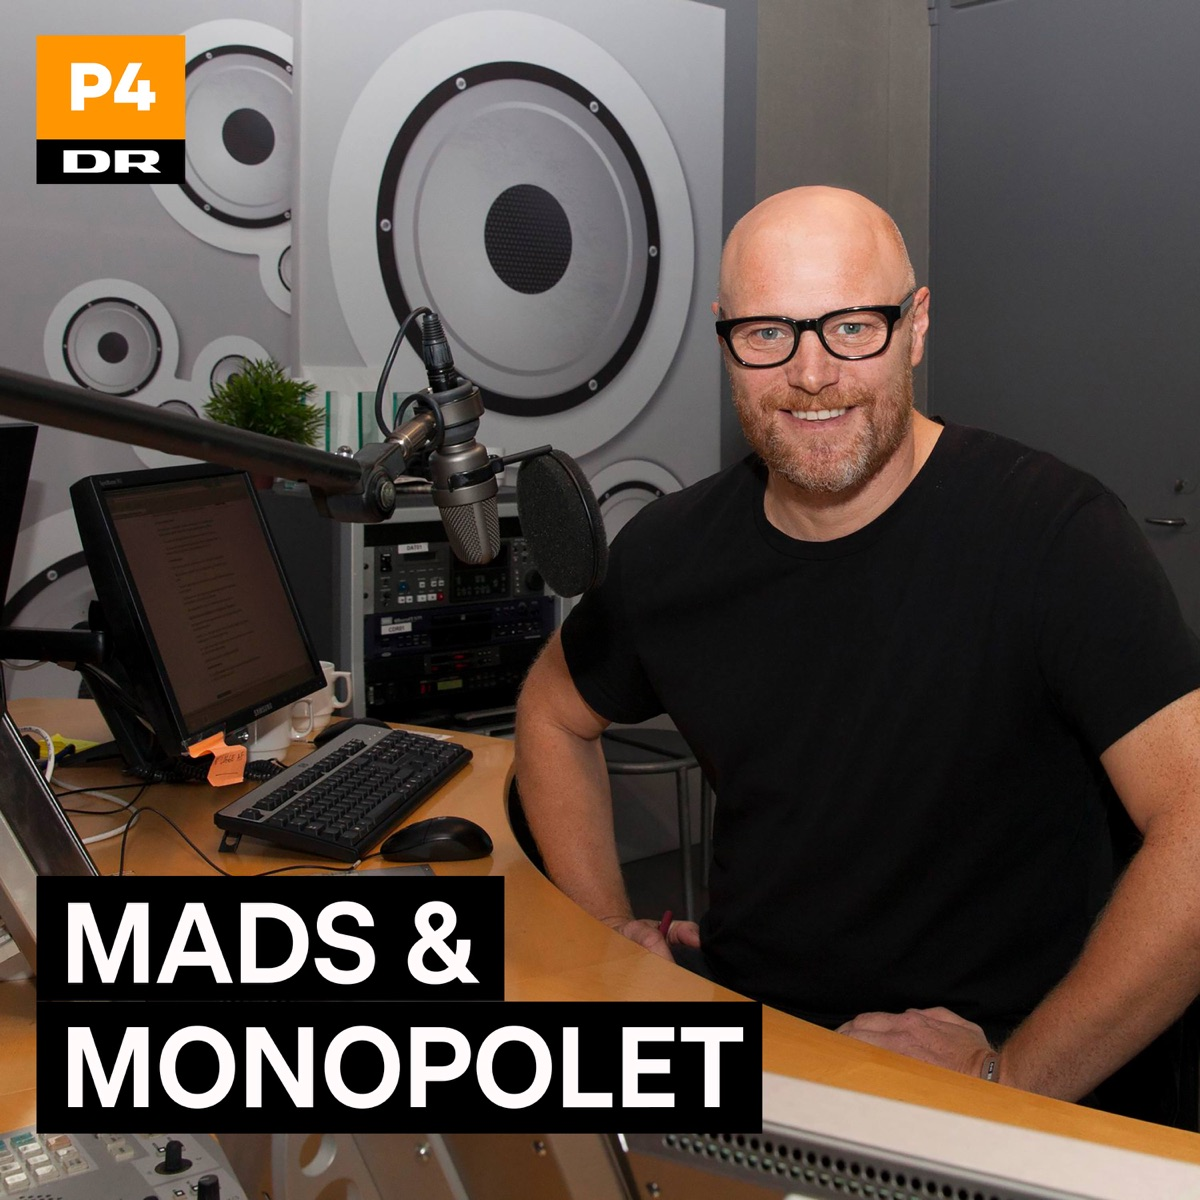 Mads & Monopolet - podcast - 26. sep 2020